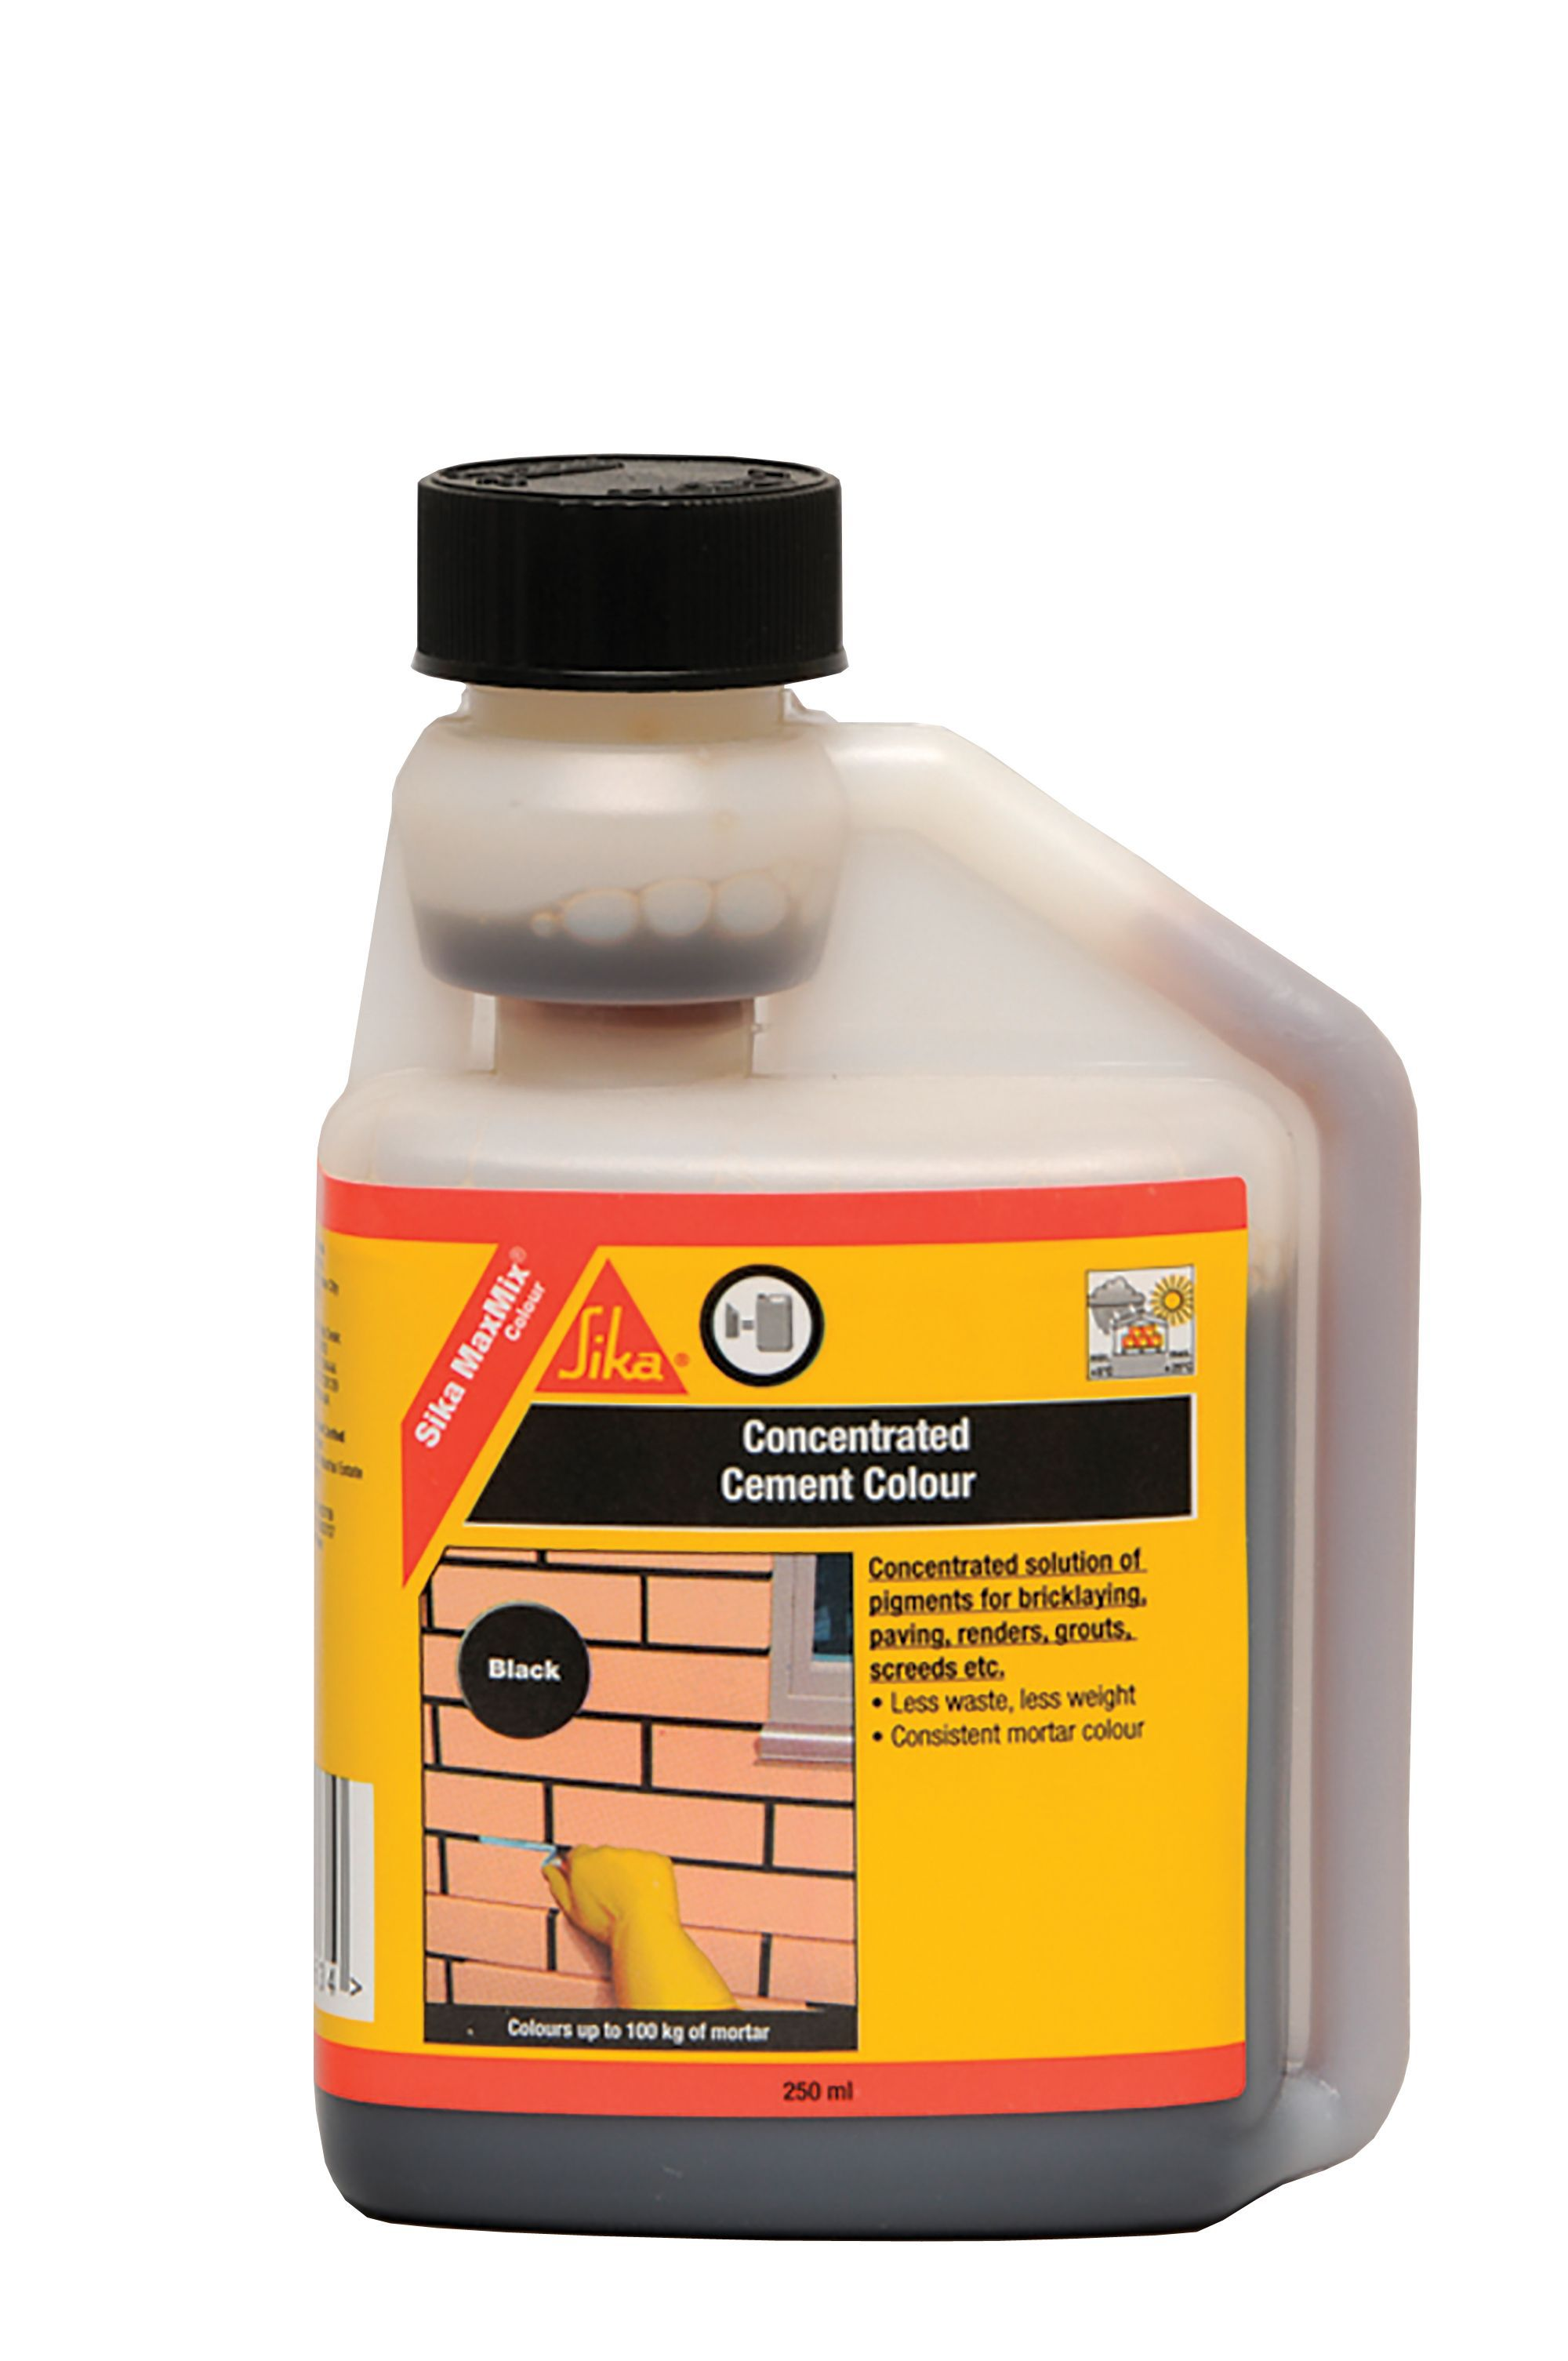 Sika Concentrated cement colourant, 0.57kg   Departments   DIY at B&Q